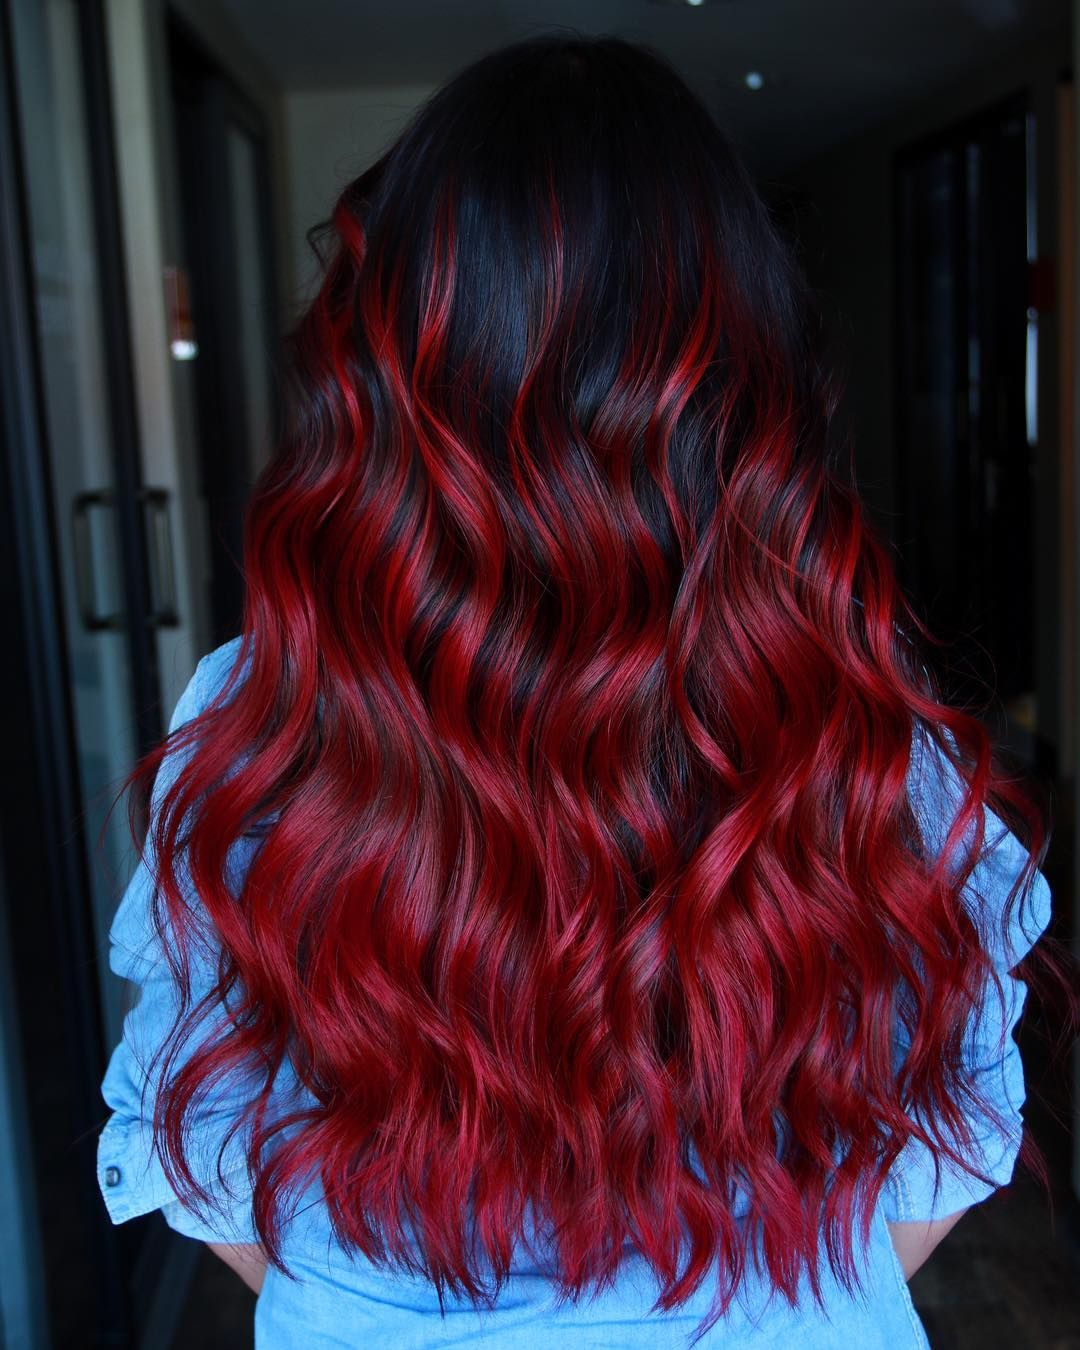 Red Wigs Lace Front Cute Messy Hairstyles Kids Tribal Braids Short Haircuts For Women Over 40 Lemonade Braids With Beads Box Braids Hairstyles 2018 Braided Ponytail